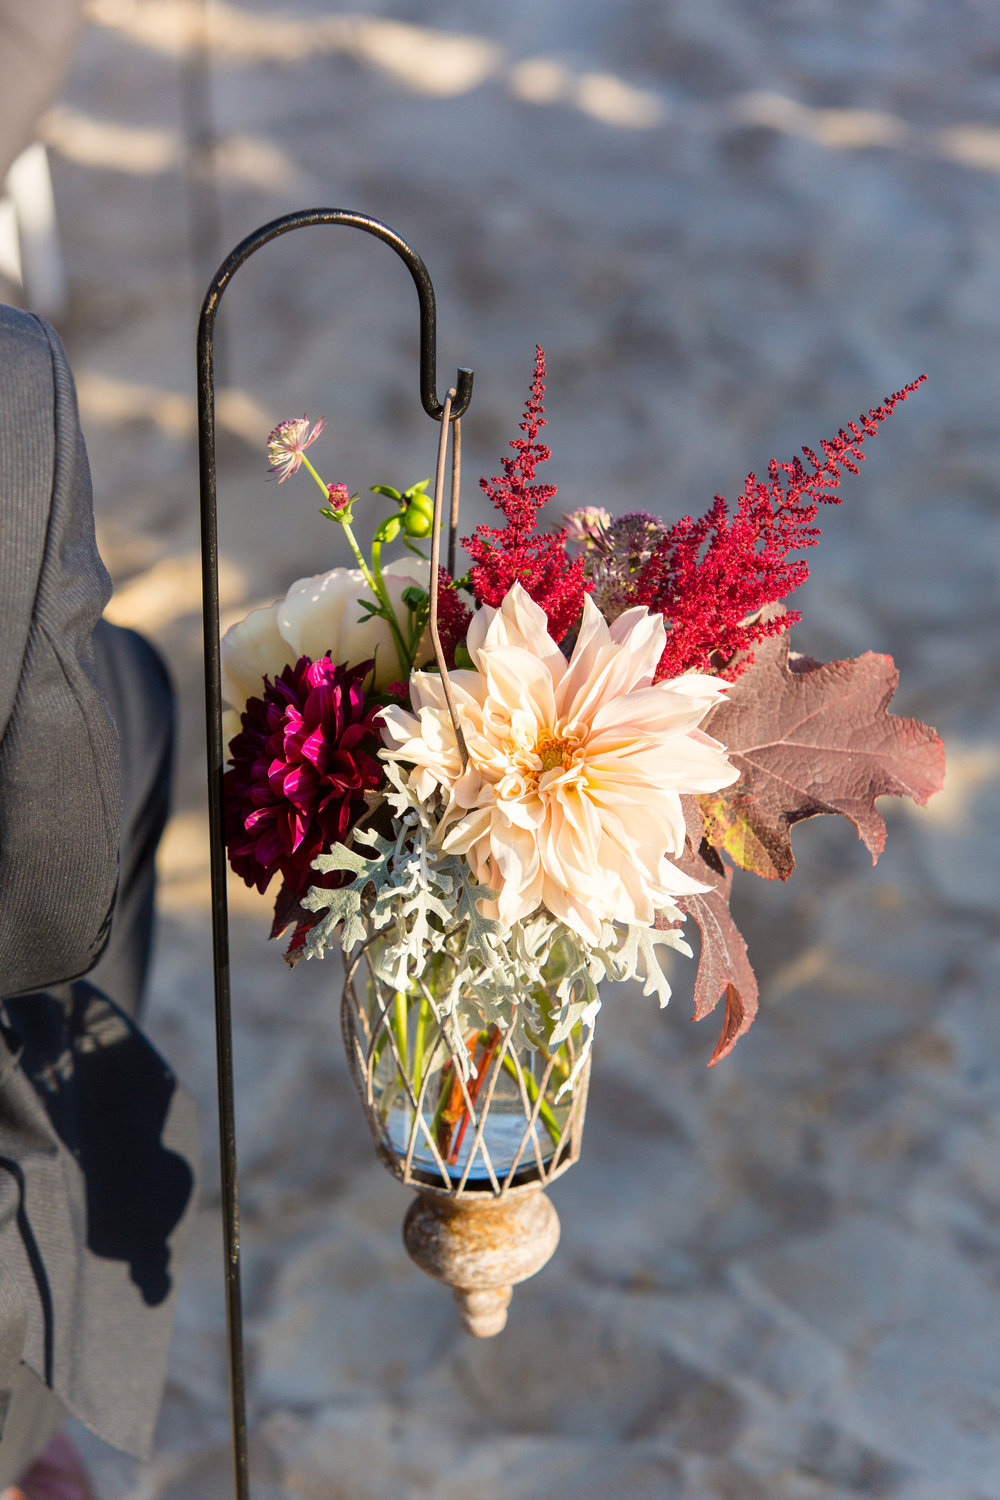 Windrift Wedding, NJ Beach Wedding, Flowers, A Garden Party, Fall Wedding, Tami & Ryan Photography